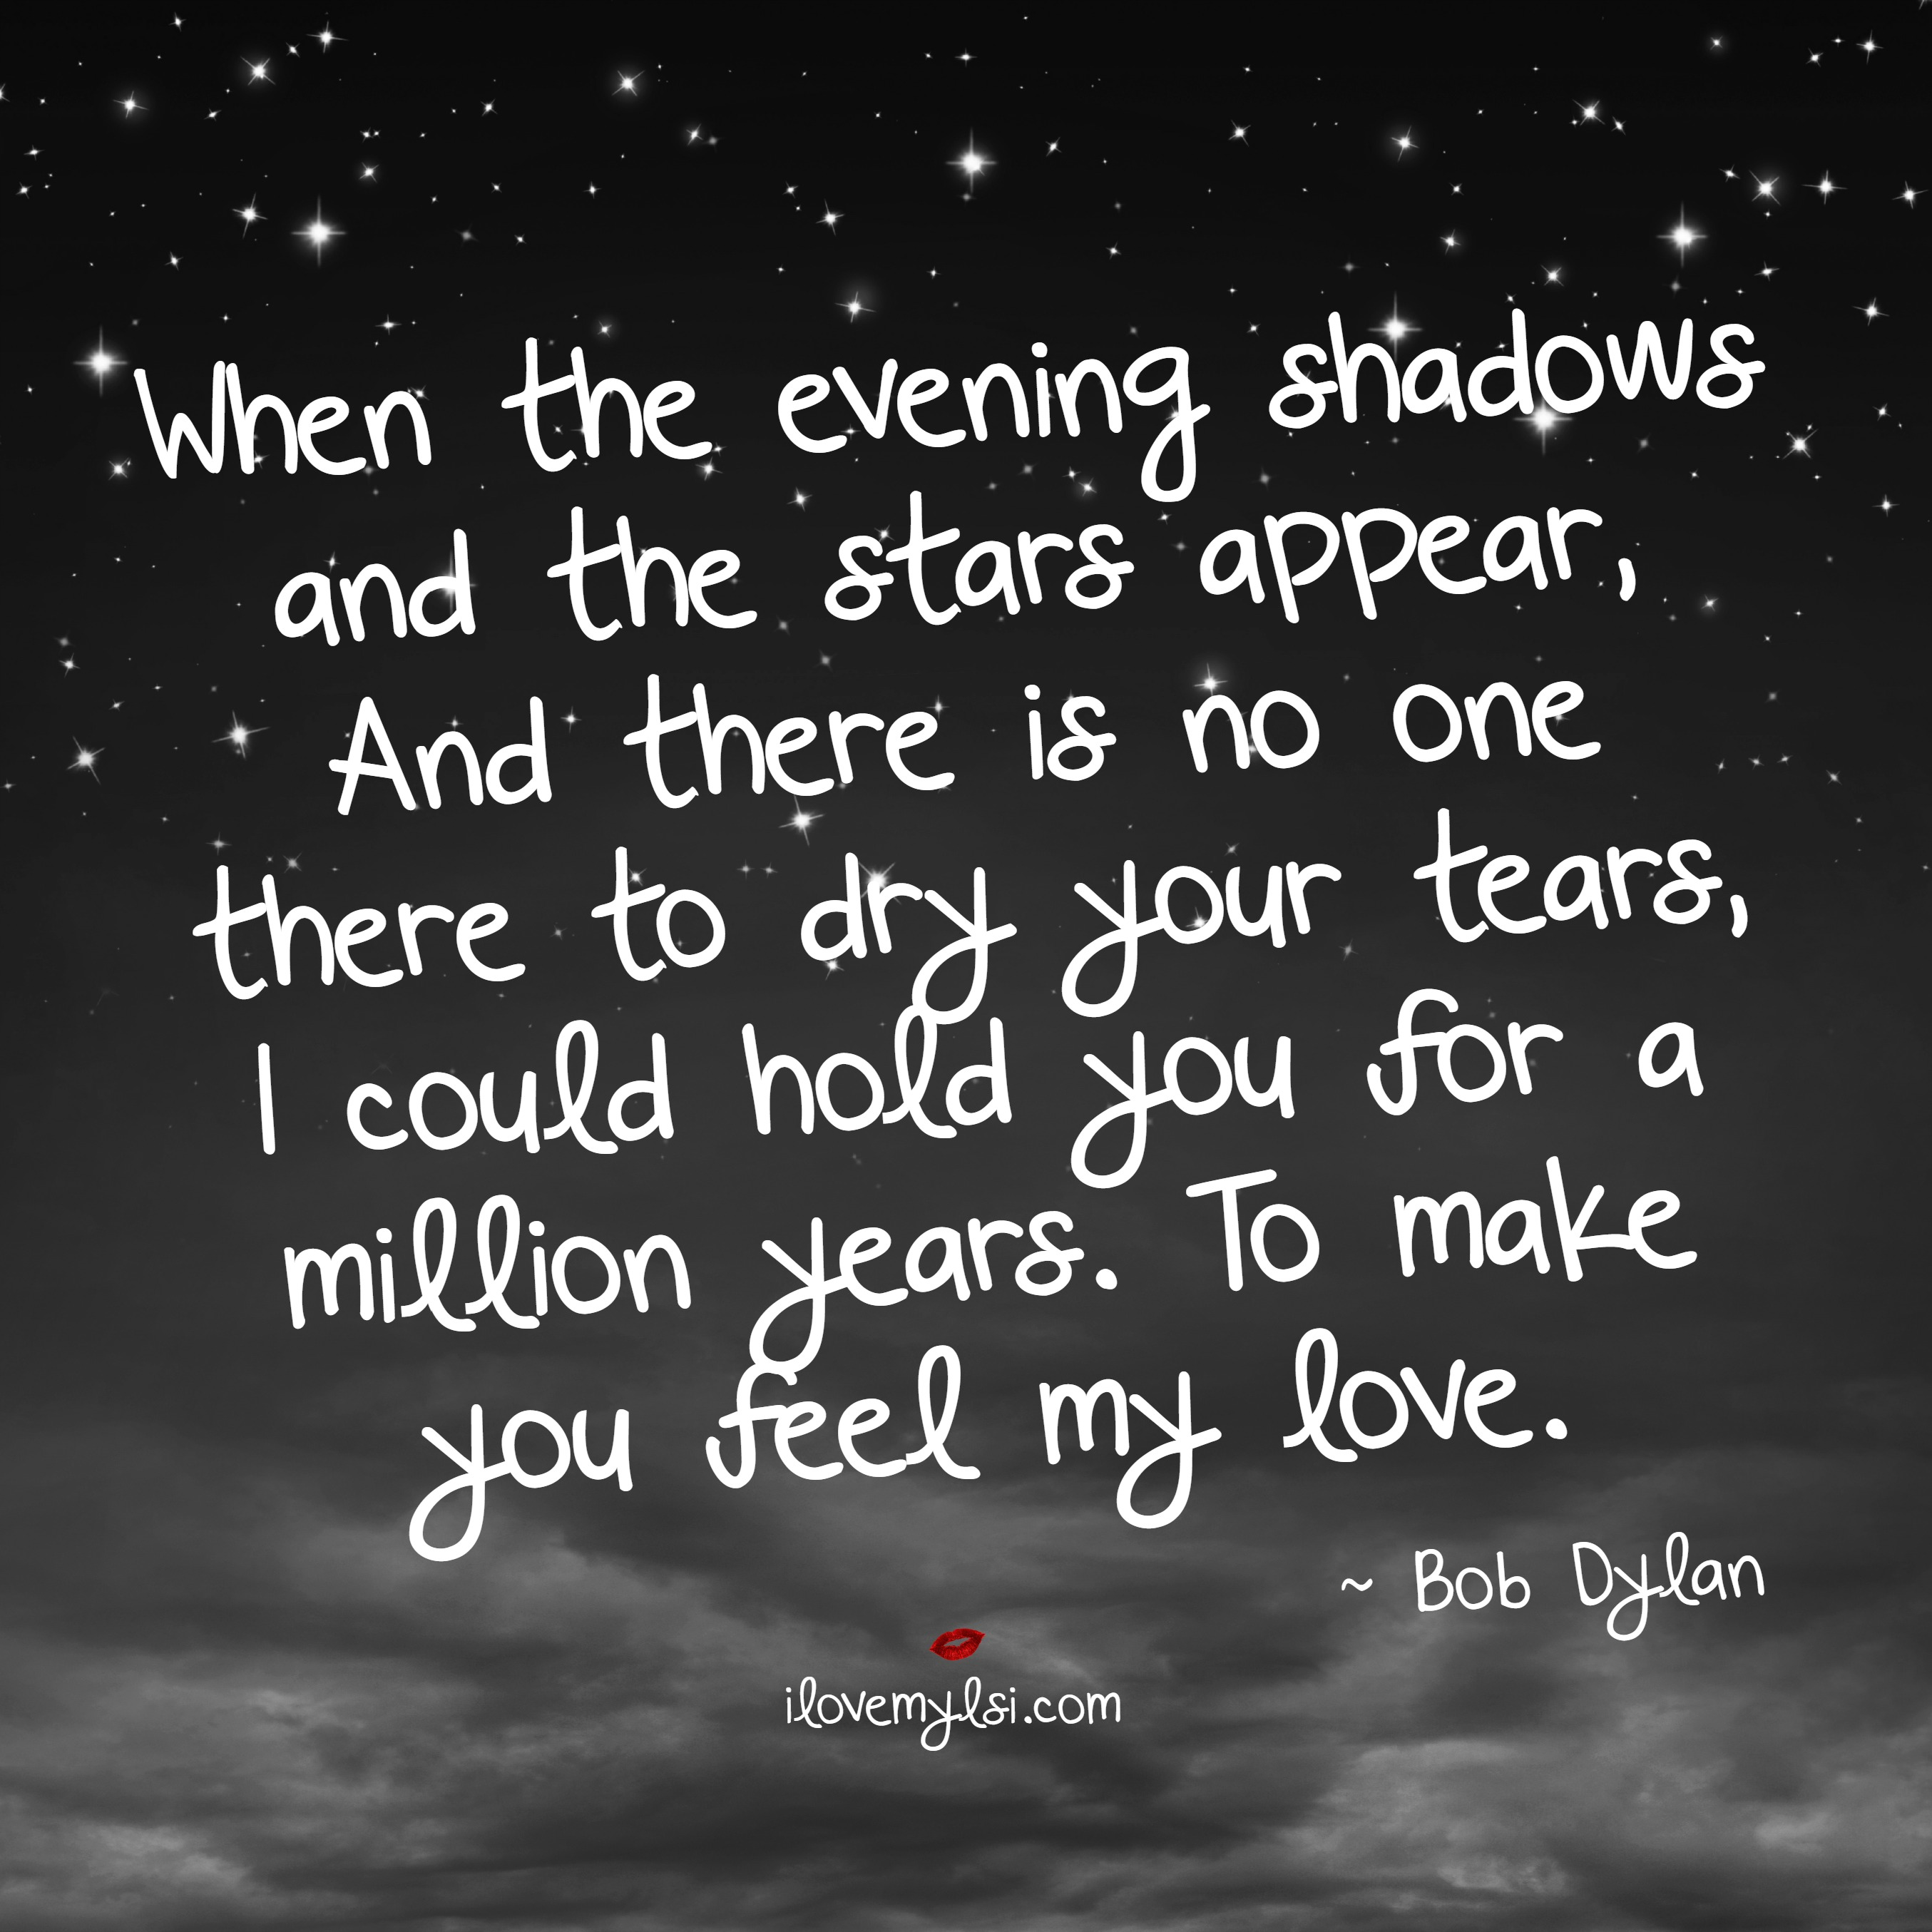 I Love You Quotes: Make You Feel My Love